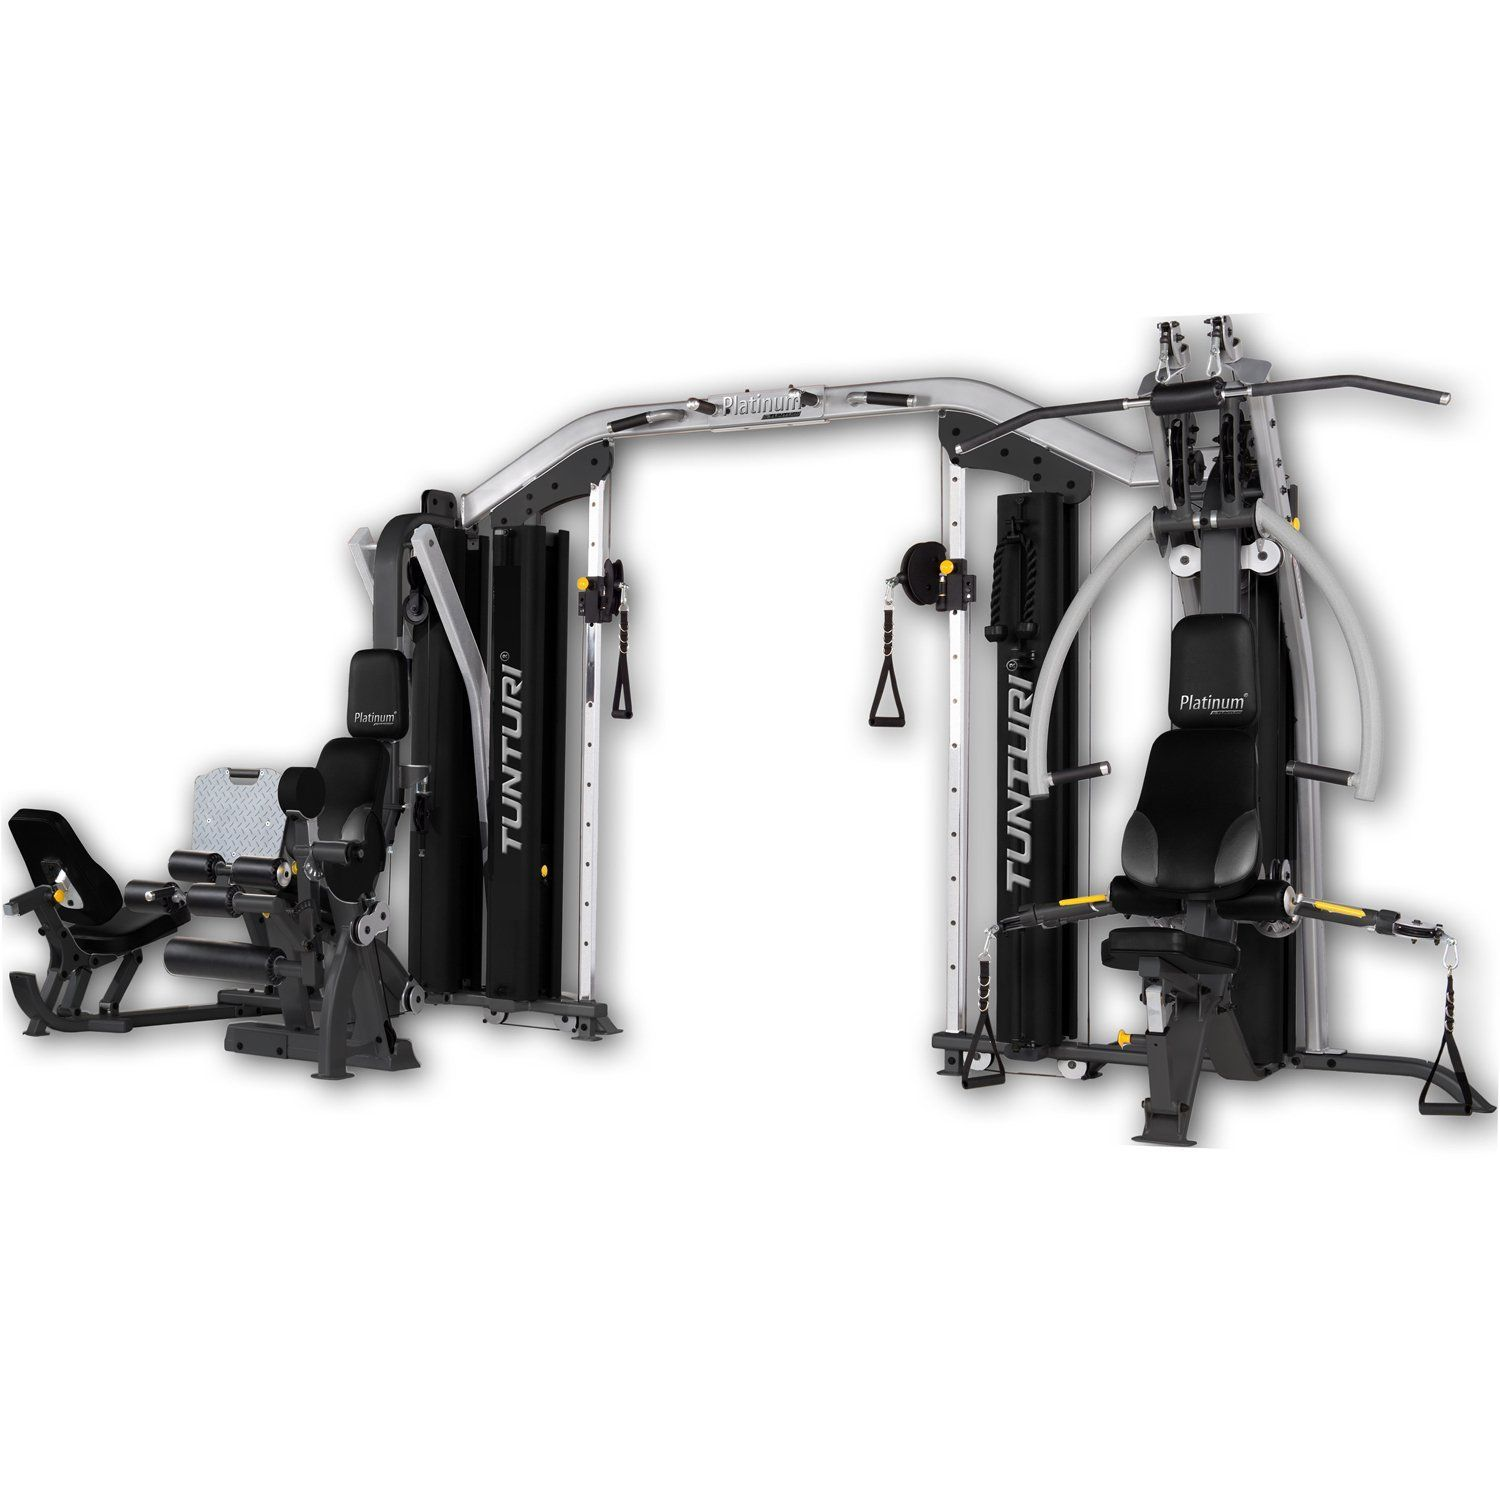 Fitness Equipment The Millionaire Marketplace Multi Gym No Equipment Workout Weight Equipment